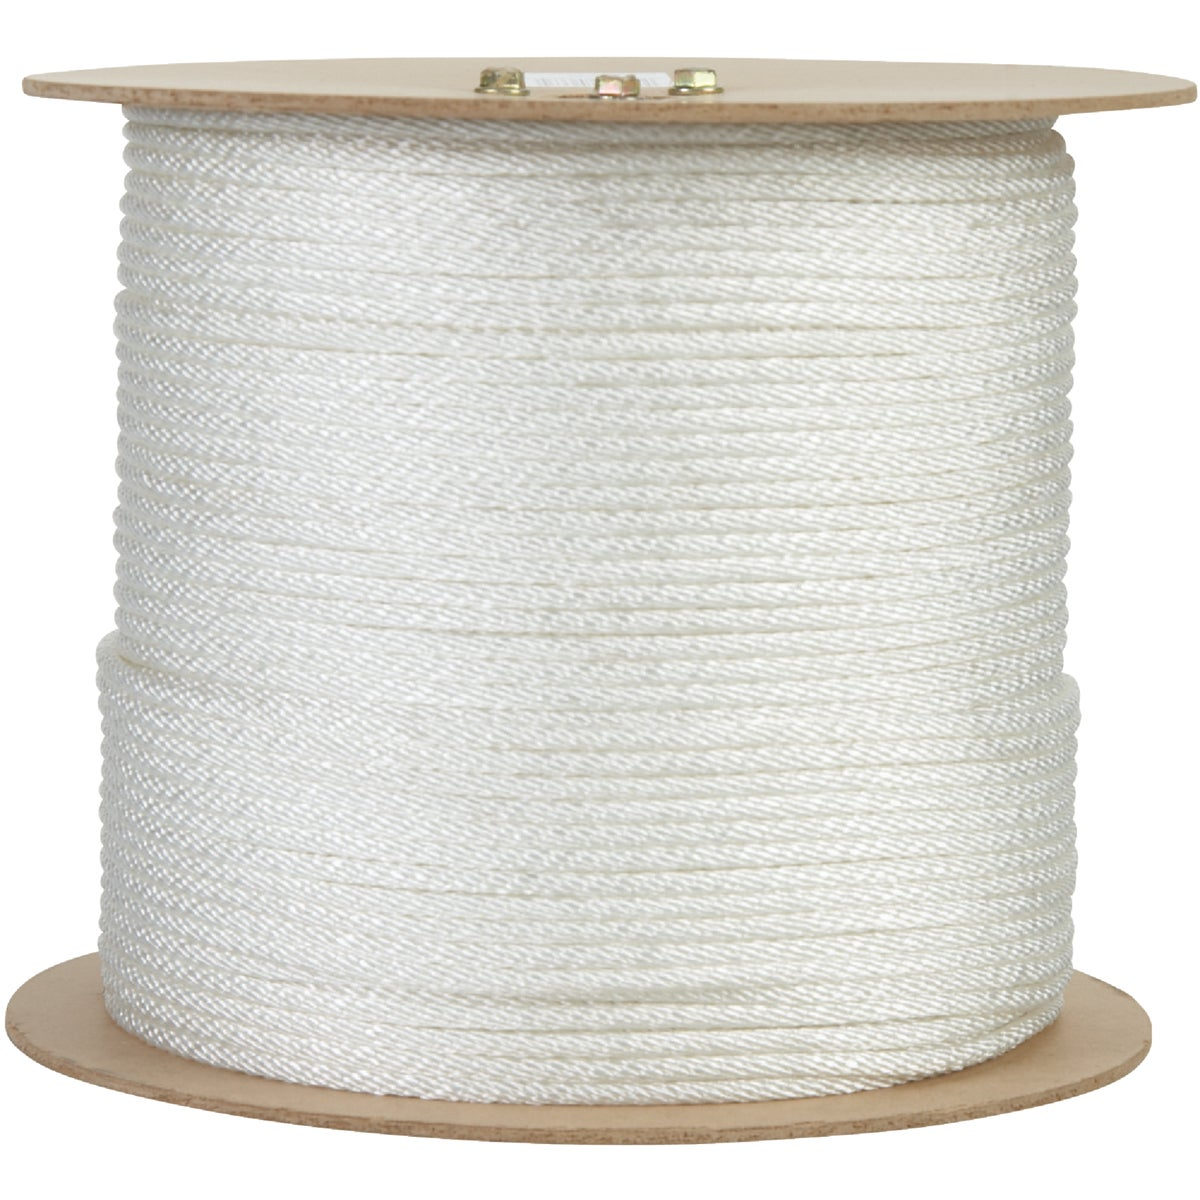 "1/4""X1000'NYL BRAID ROPE"